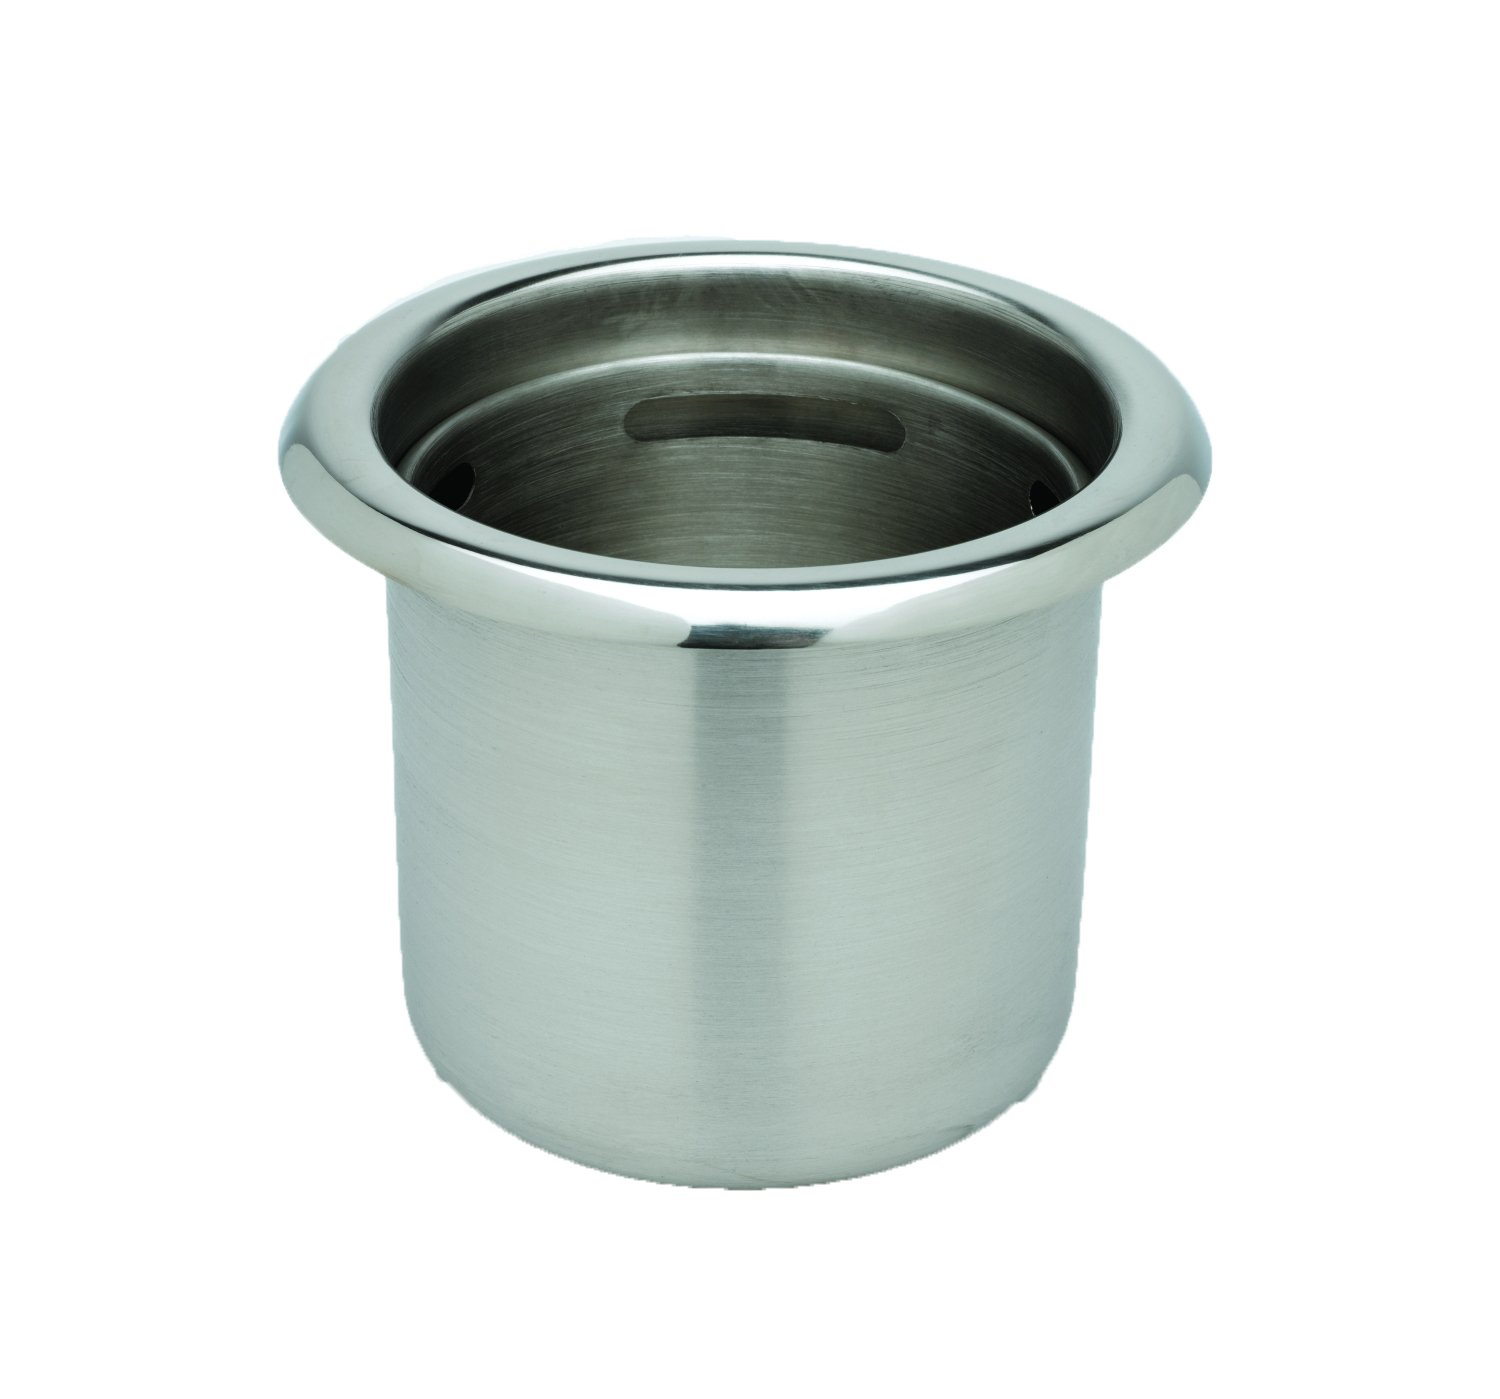 T&S Brass 006678-45 Dipperwell Bowl and Drain Assembly